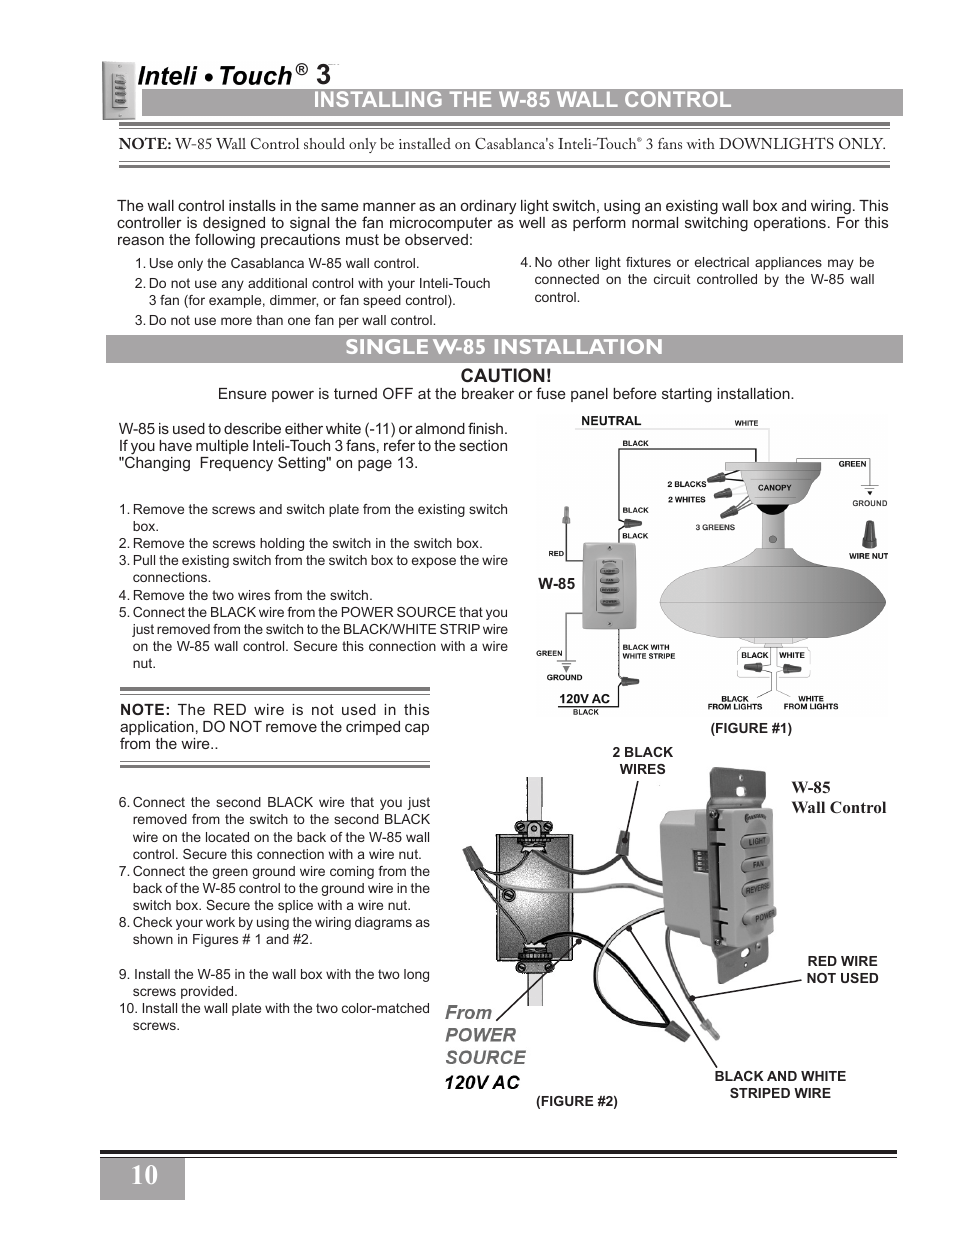 casablanca fan remote instructions